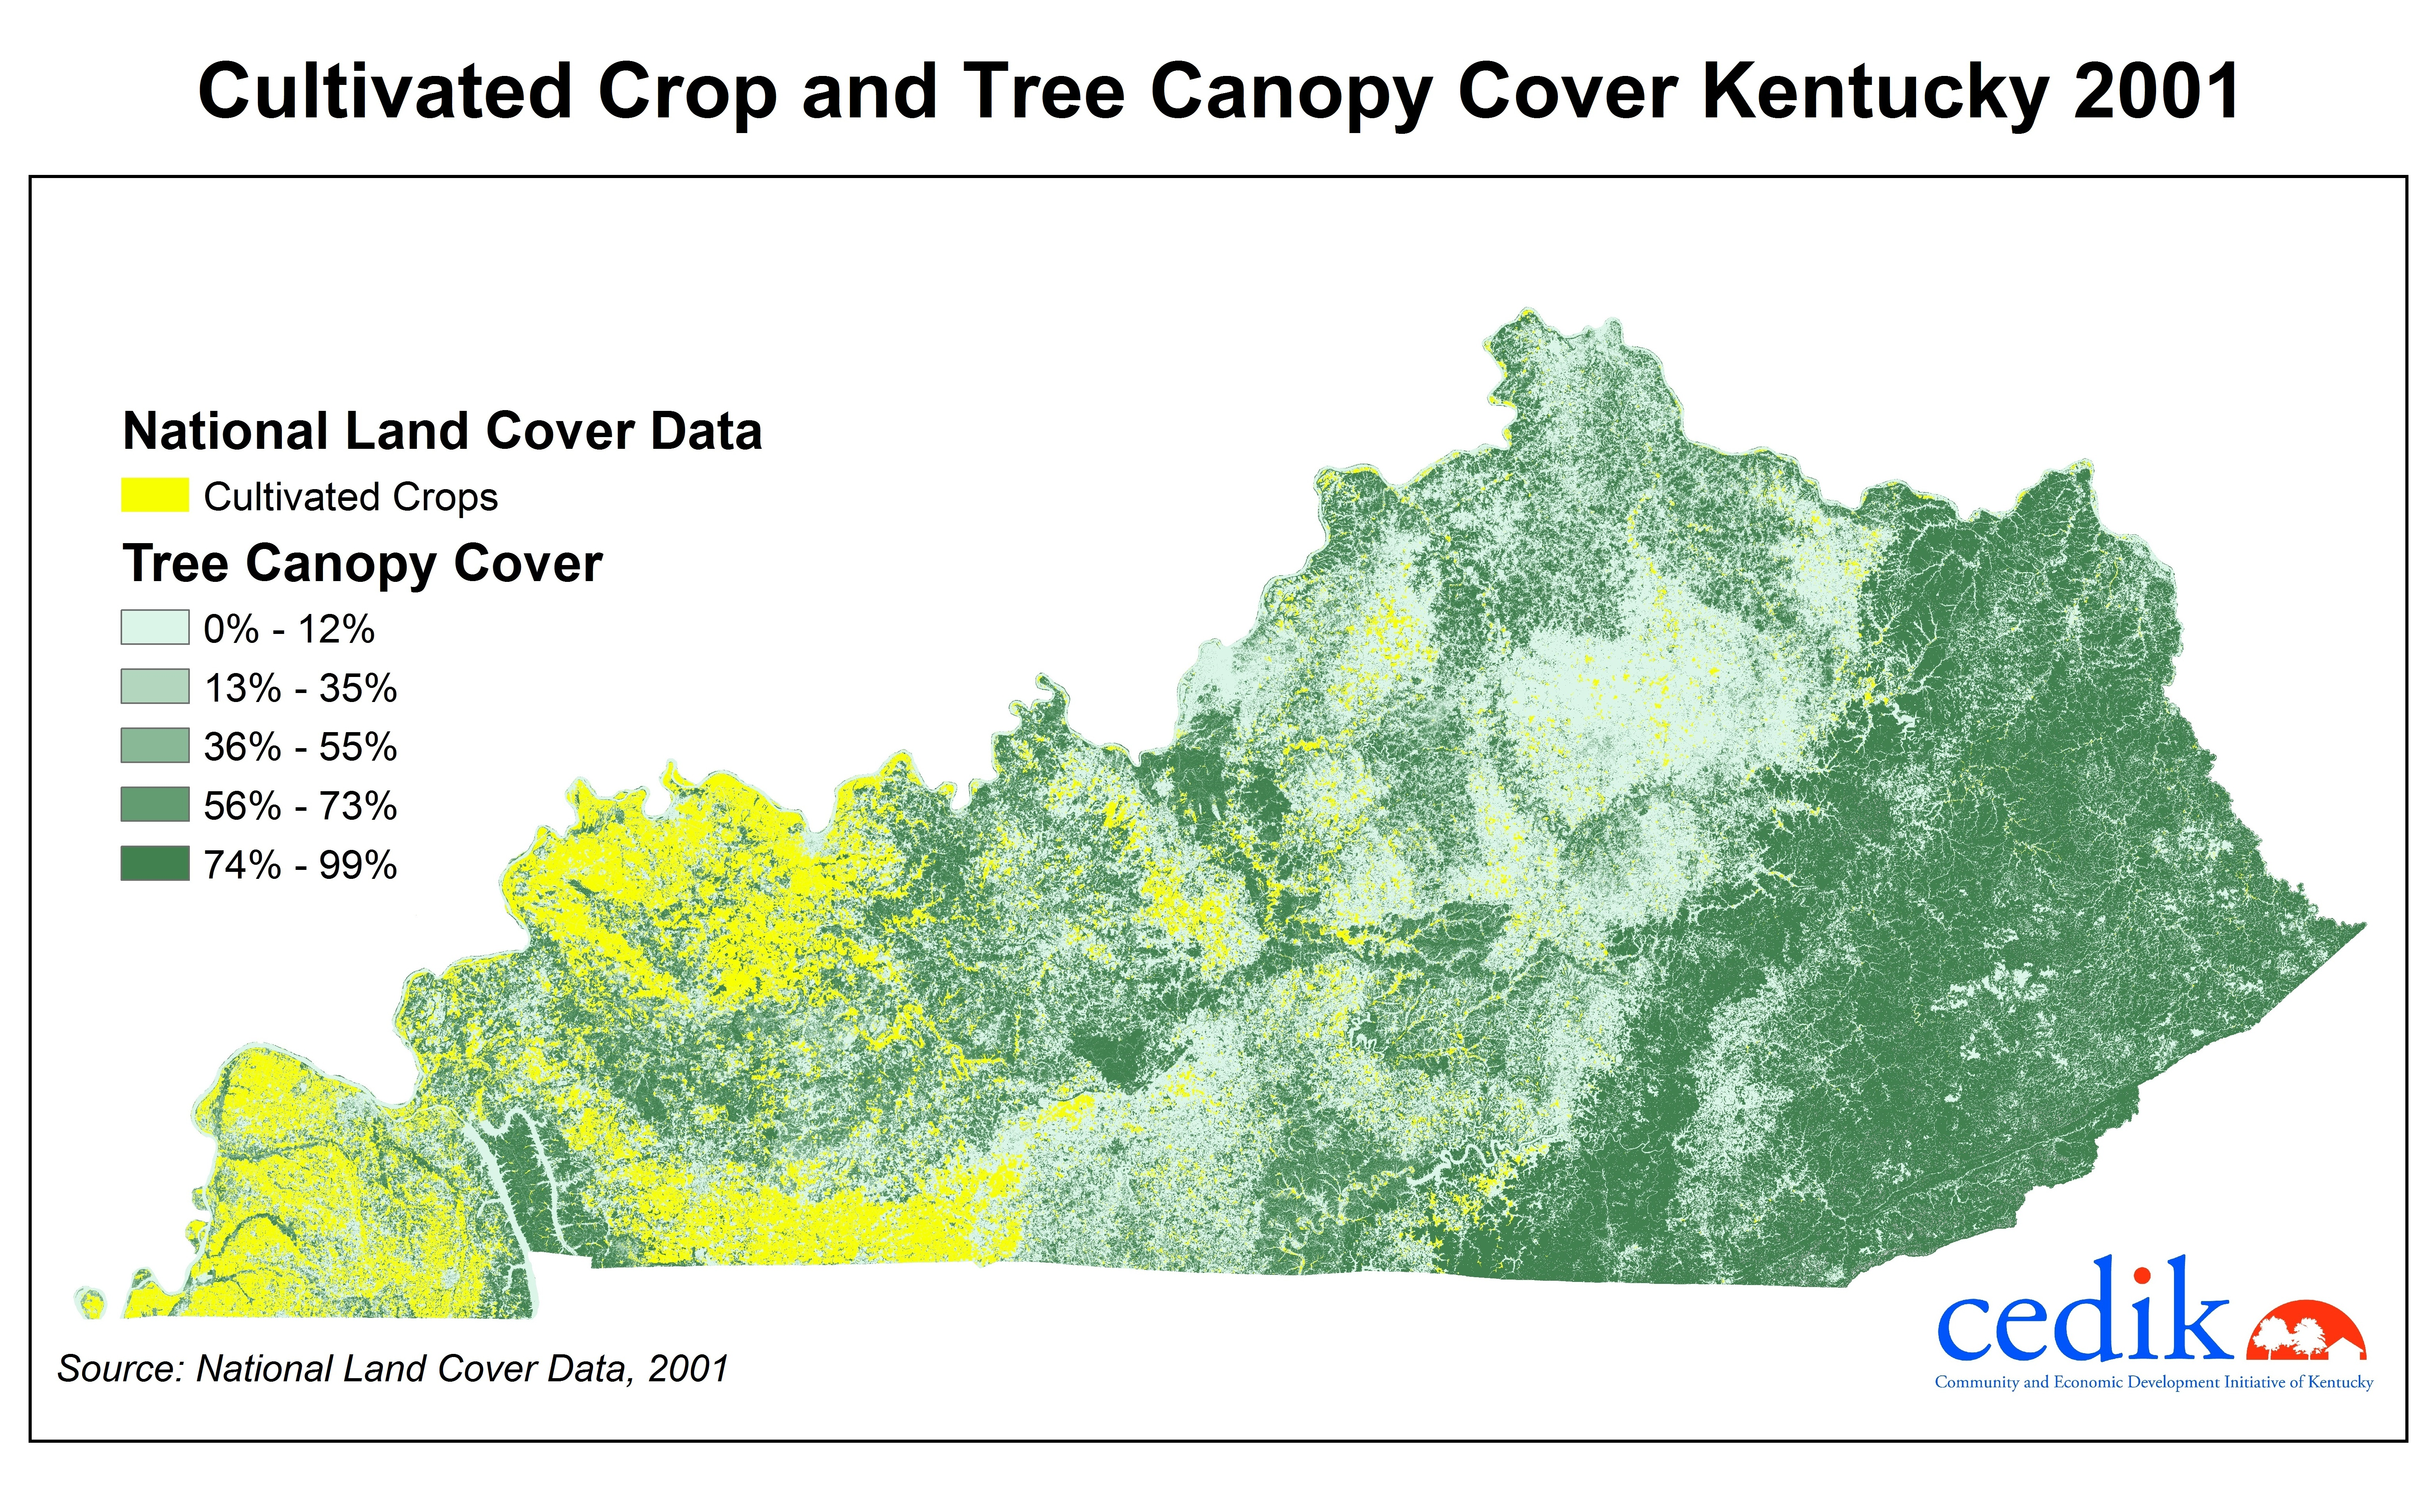 Air Quality In Kentucky Can You Breathe Easy CEDIK Faculty And - Kentucky economic map